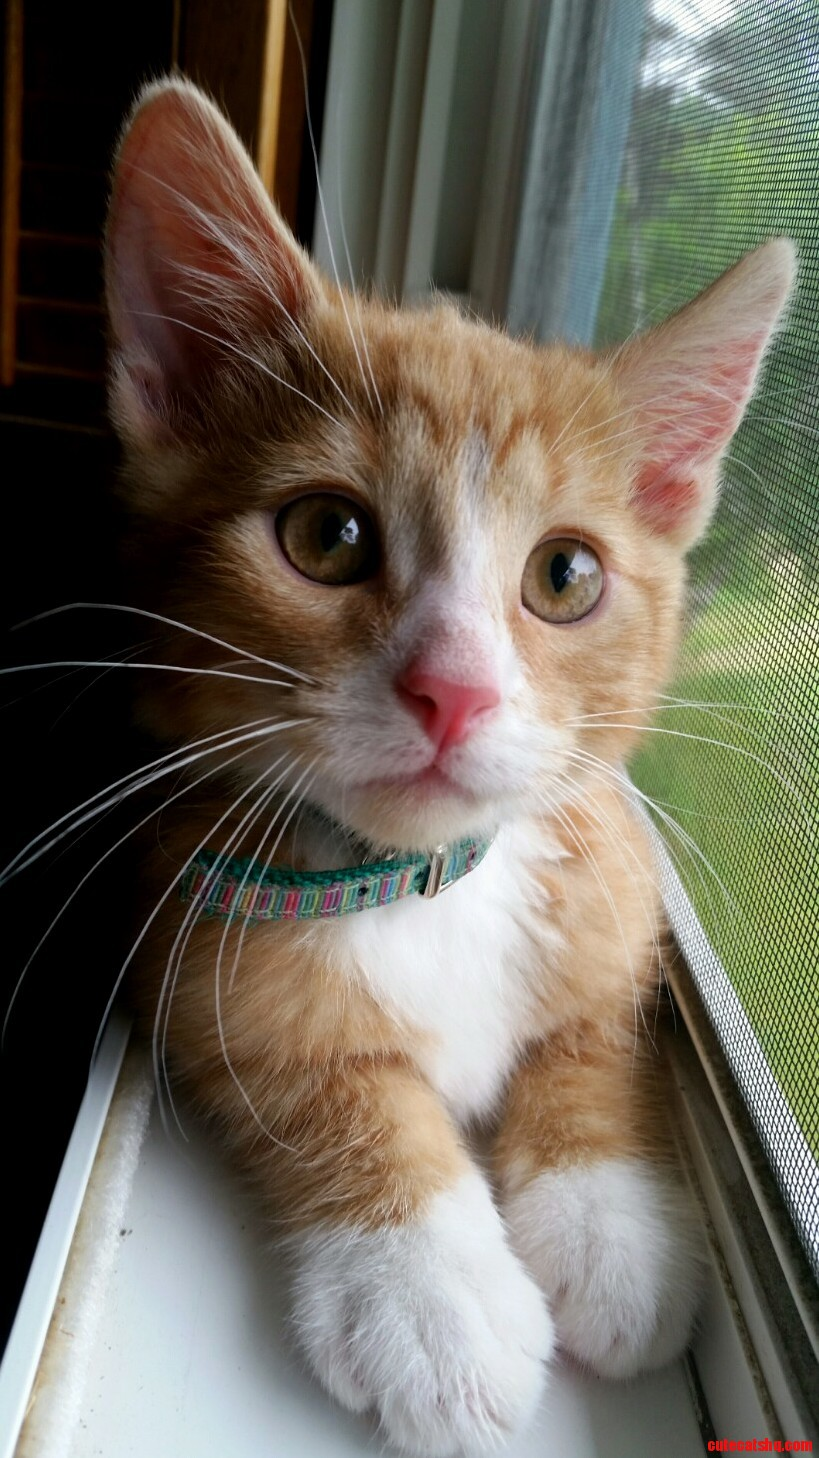 The pink nosed ginger…